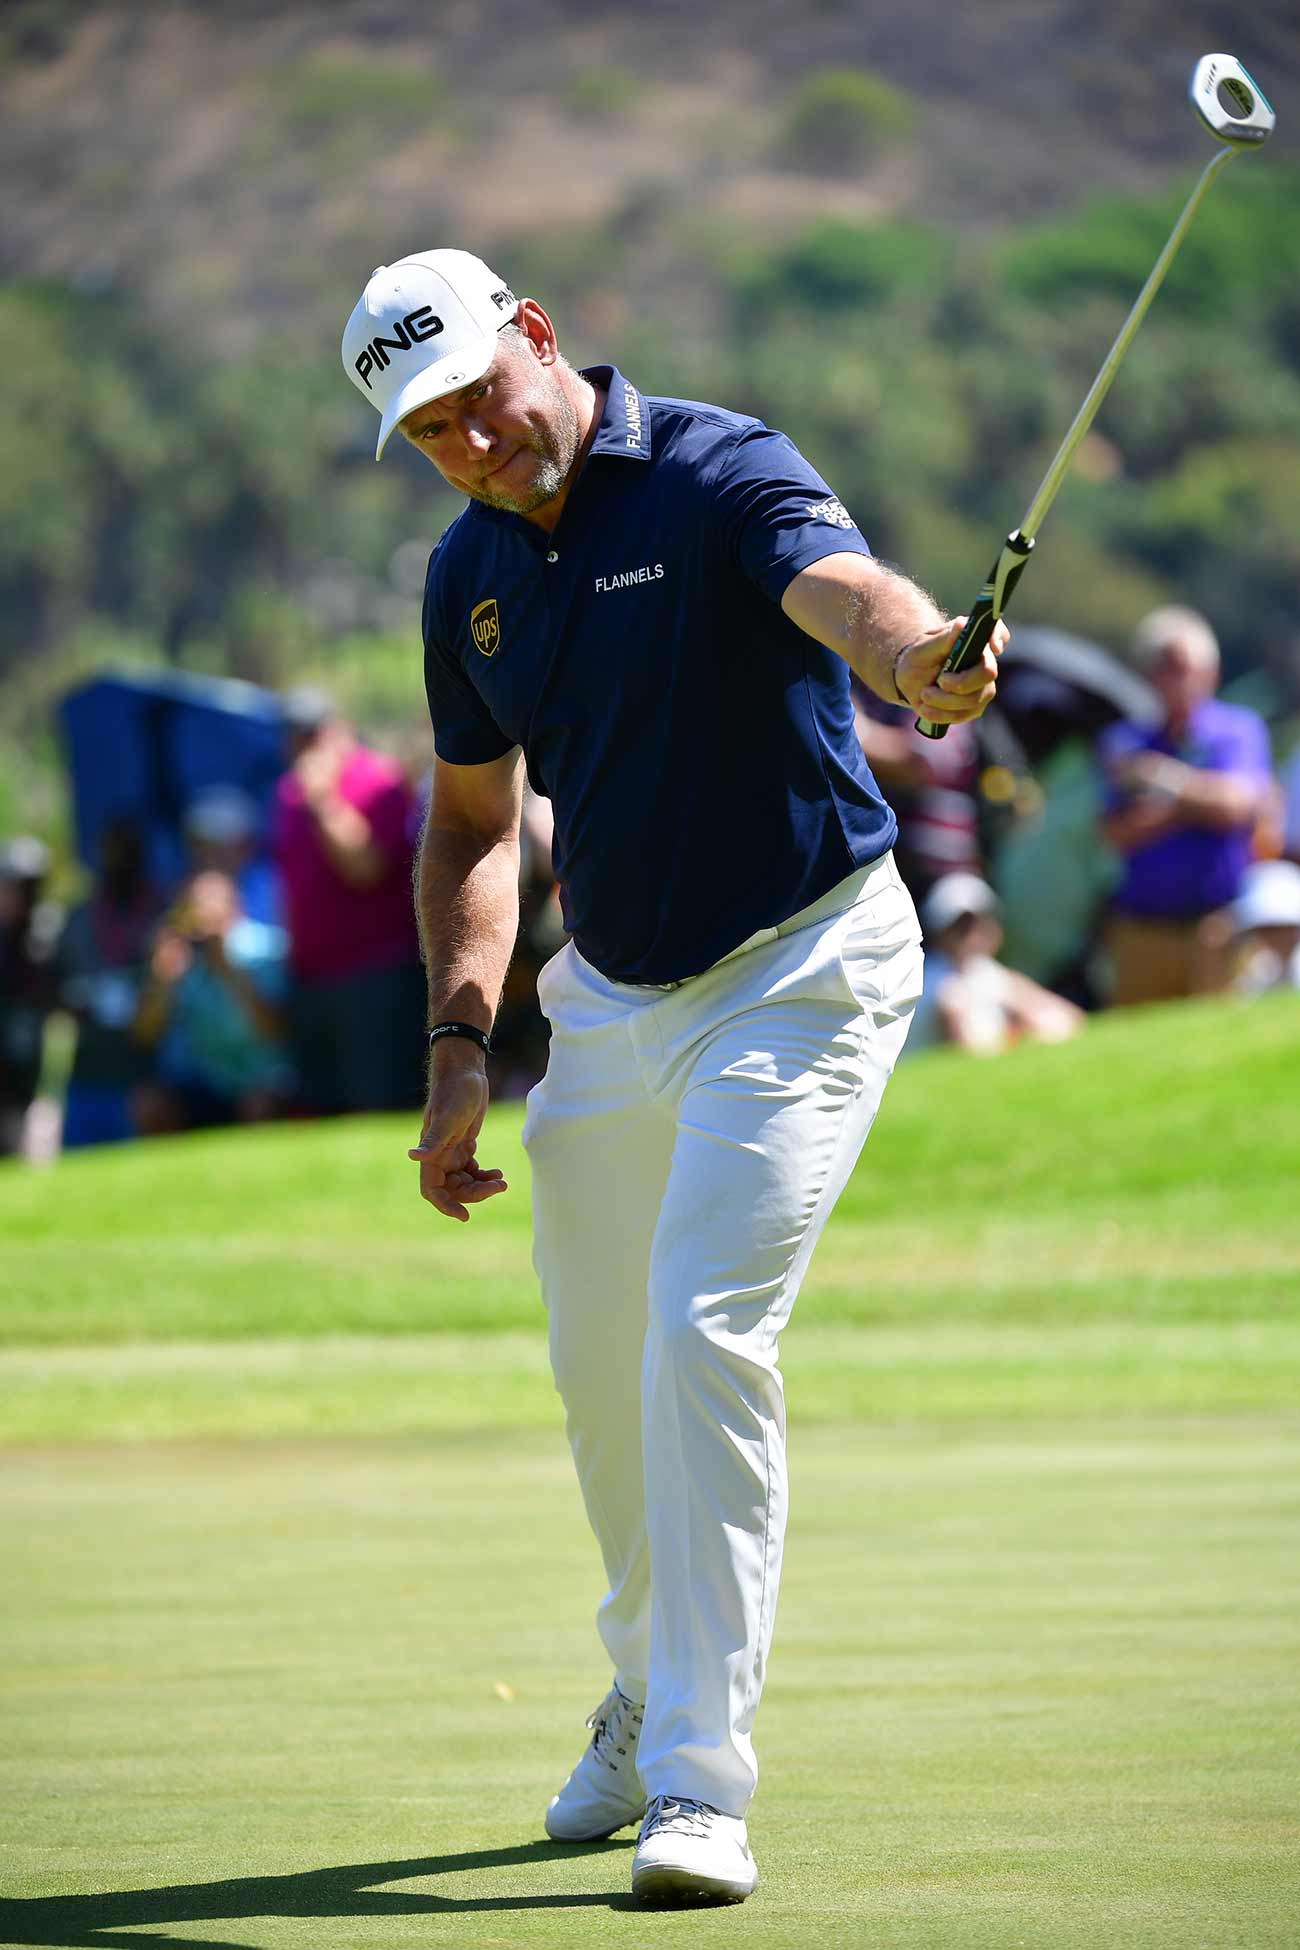 Lee Westwood holds up his putter during a stellar final round on Sunday.